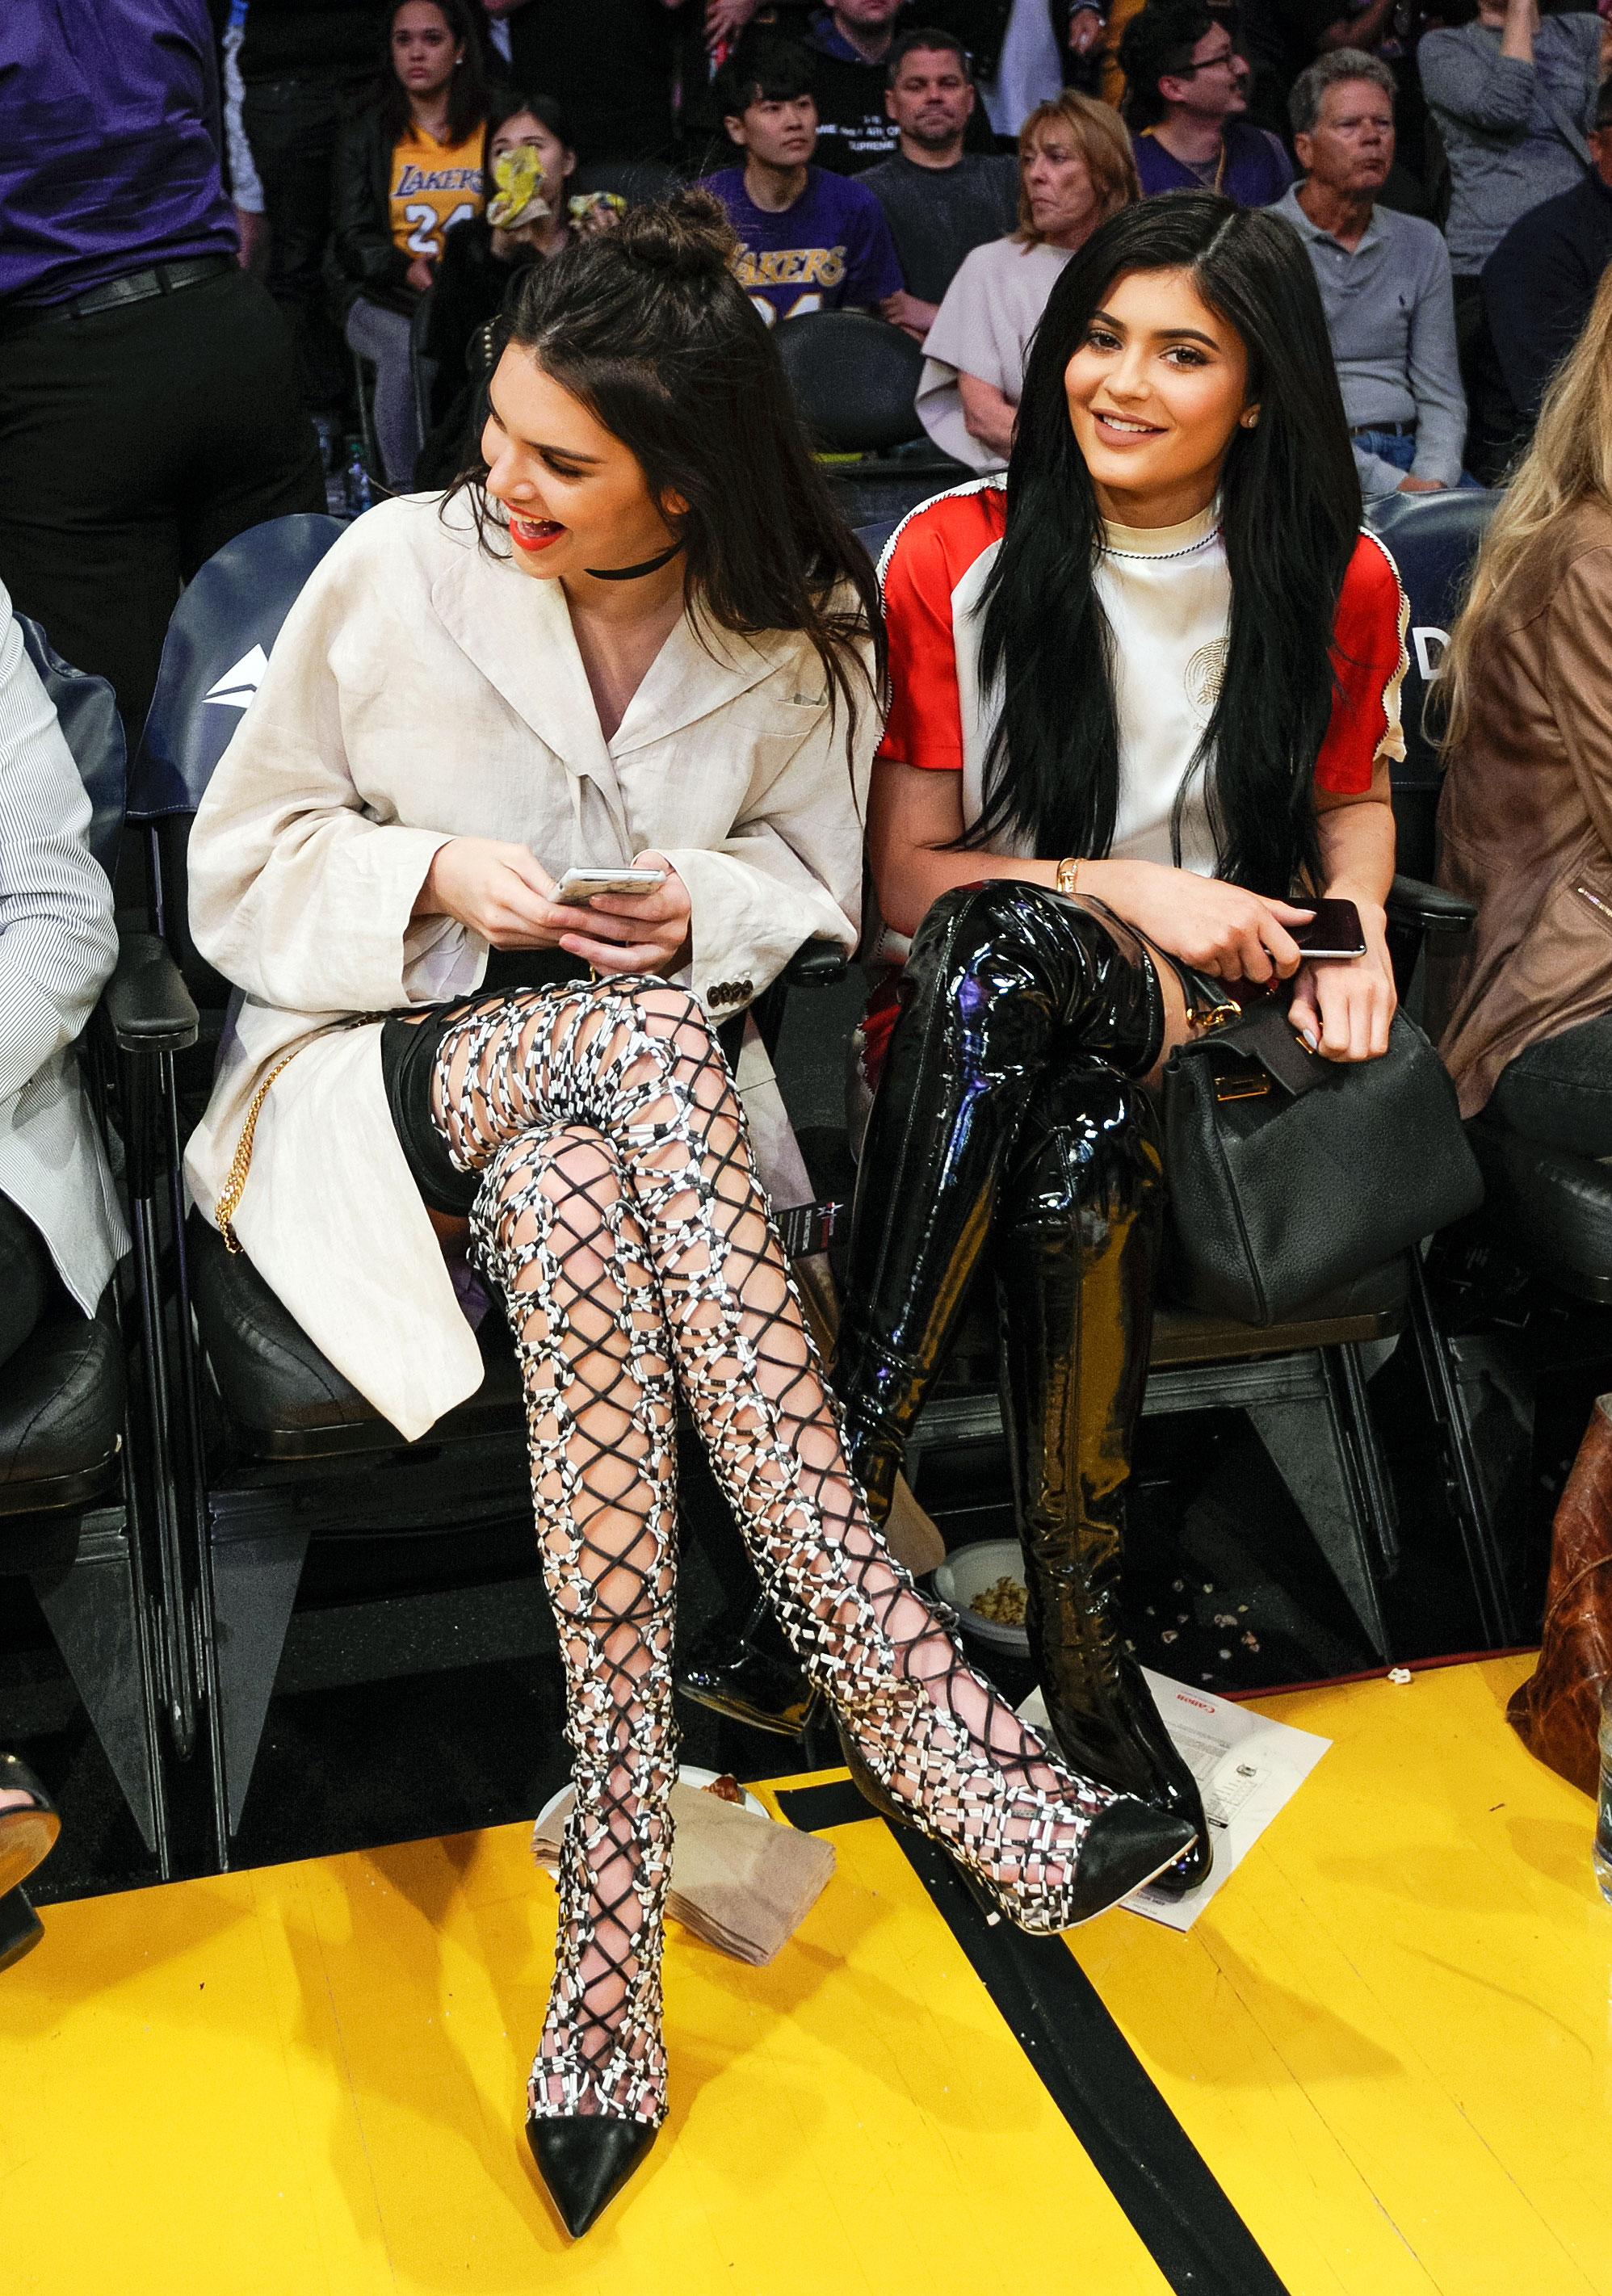 853929600c3c Kendall and Kylie Jenner rocked over-the-knee boots at the Lakers game in  L.A. on March 15. Noel Vasquez Getty